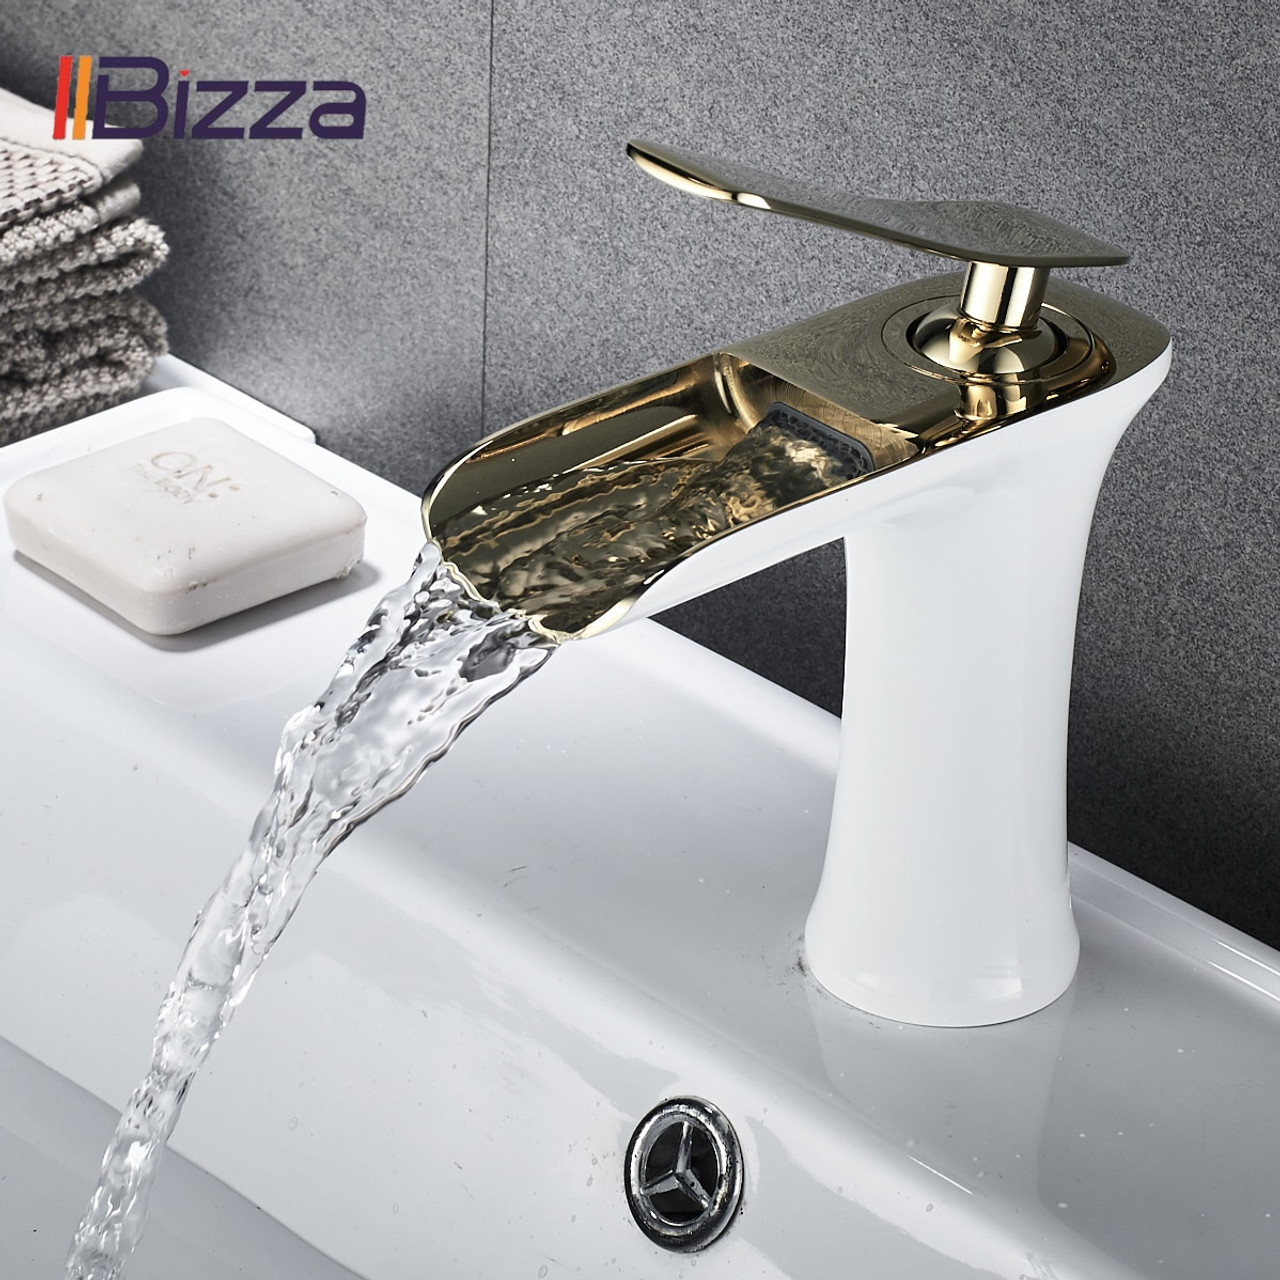 basin faucet black waterfall bathroom faucets hot cold water basin mixer tap chrome brass toilet sink water taps crane gold 1401 basin faucets